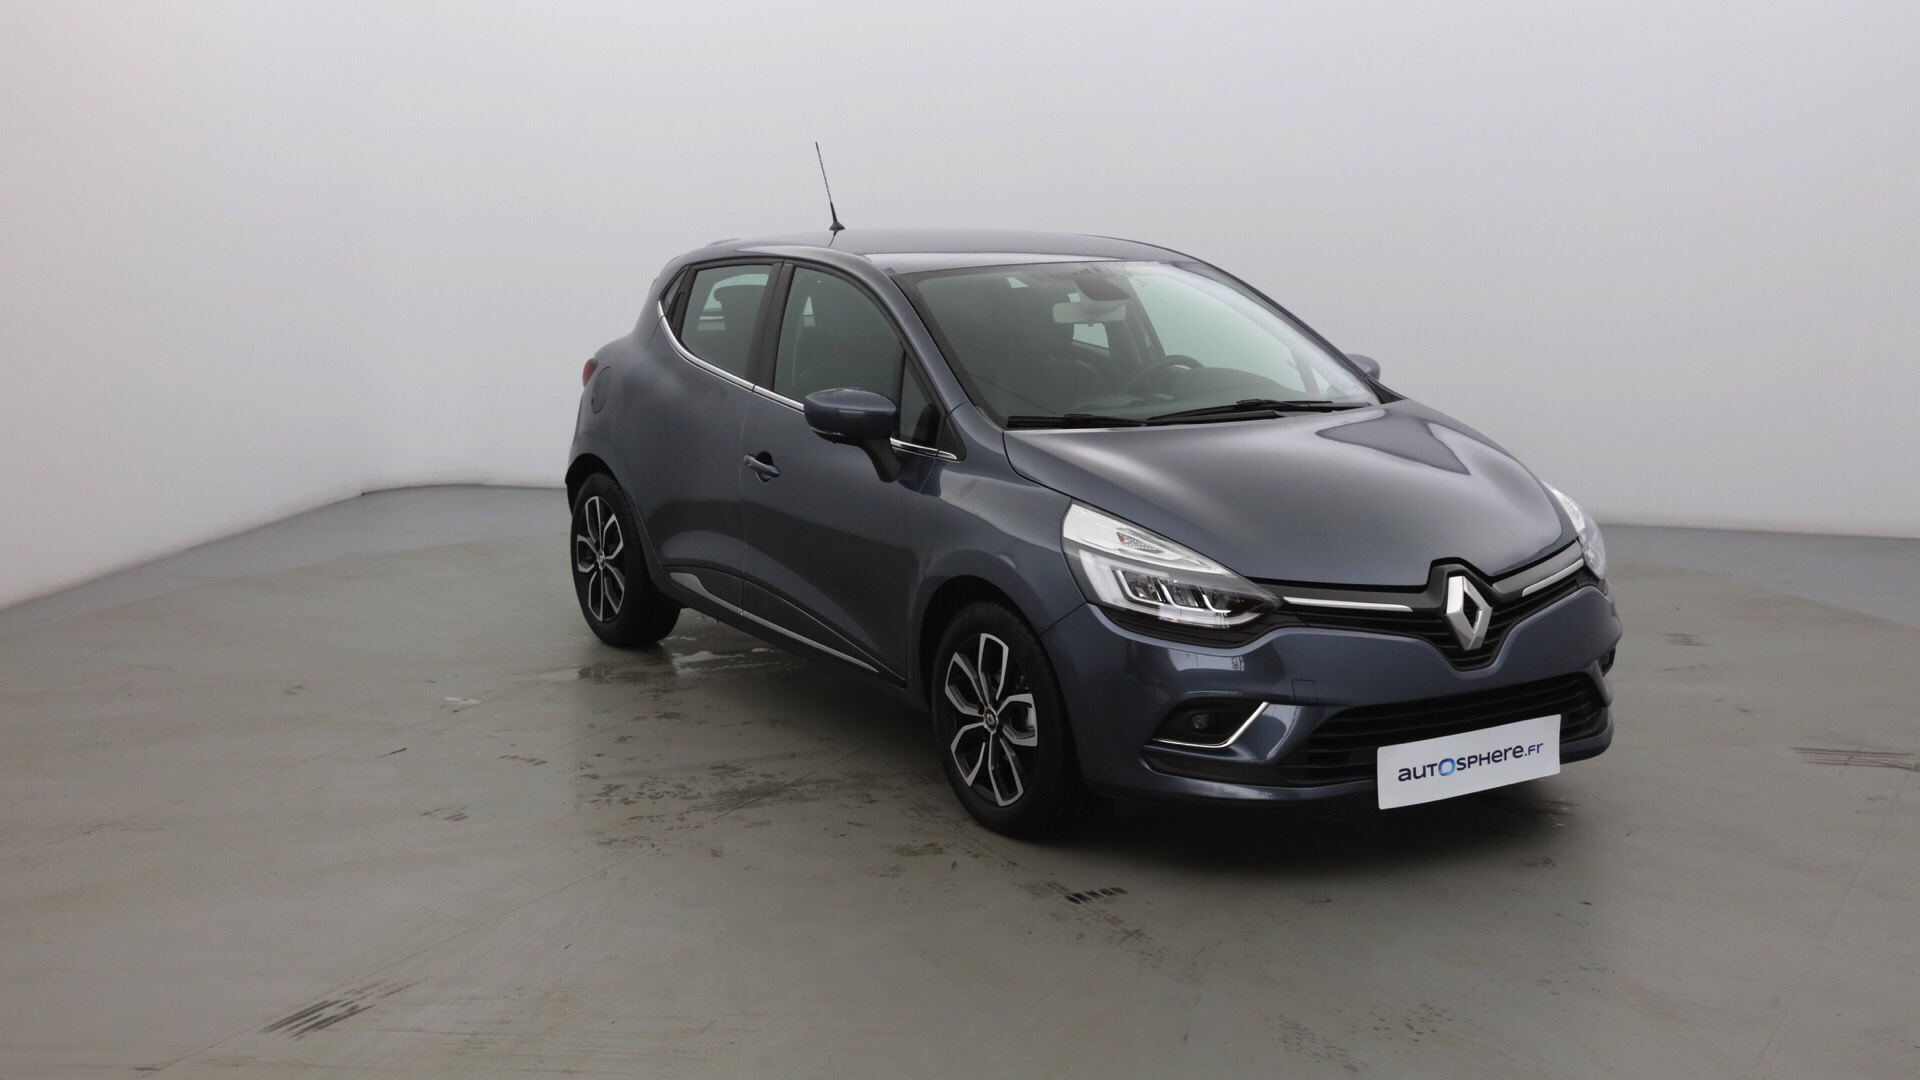 RENAULT CLIO 0.9 TCE 90CH ENERGY INTENS 5P - Miniature 3